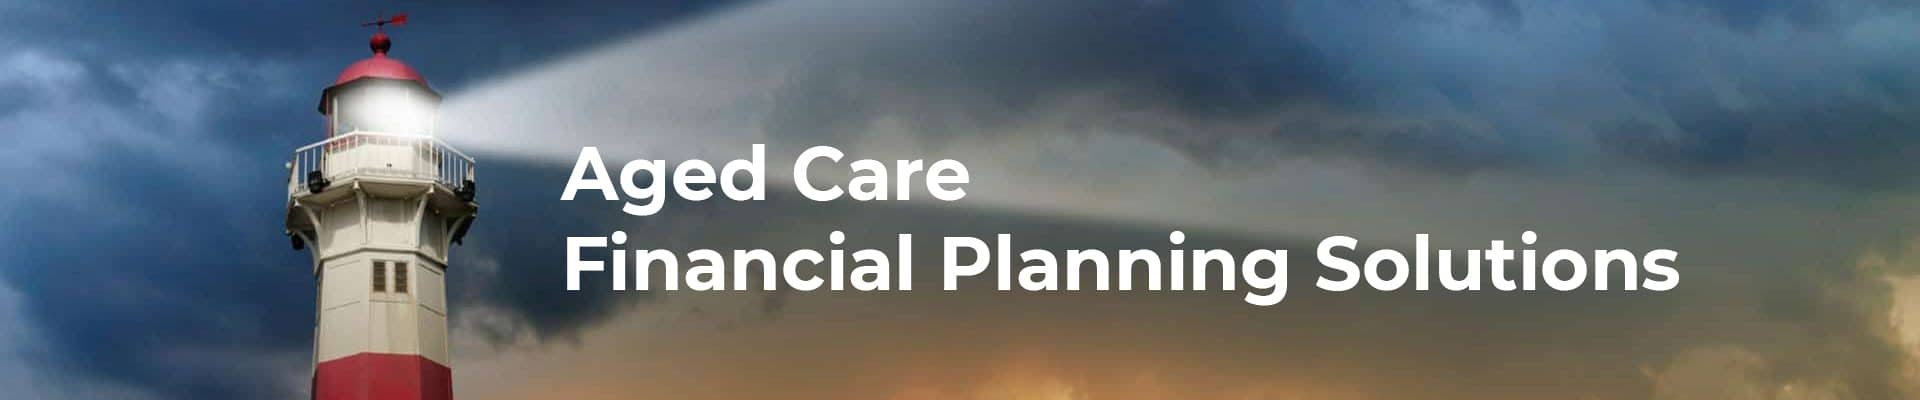 Aged Care financial planning solutions